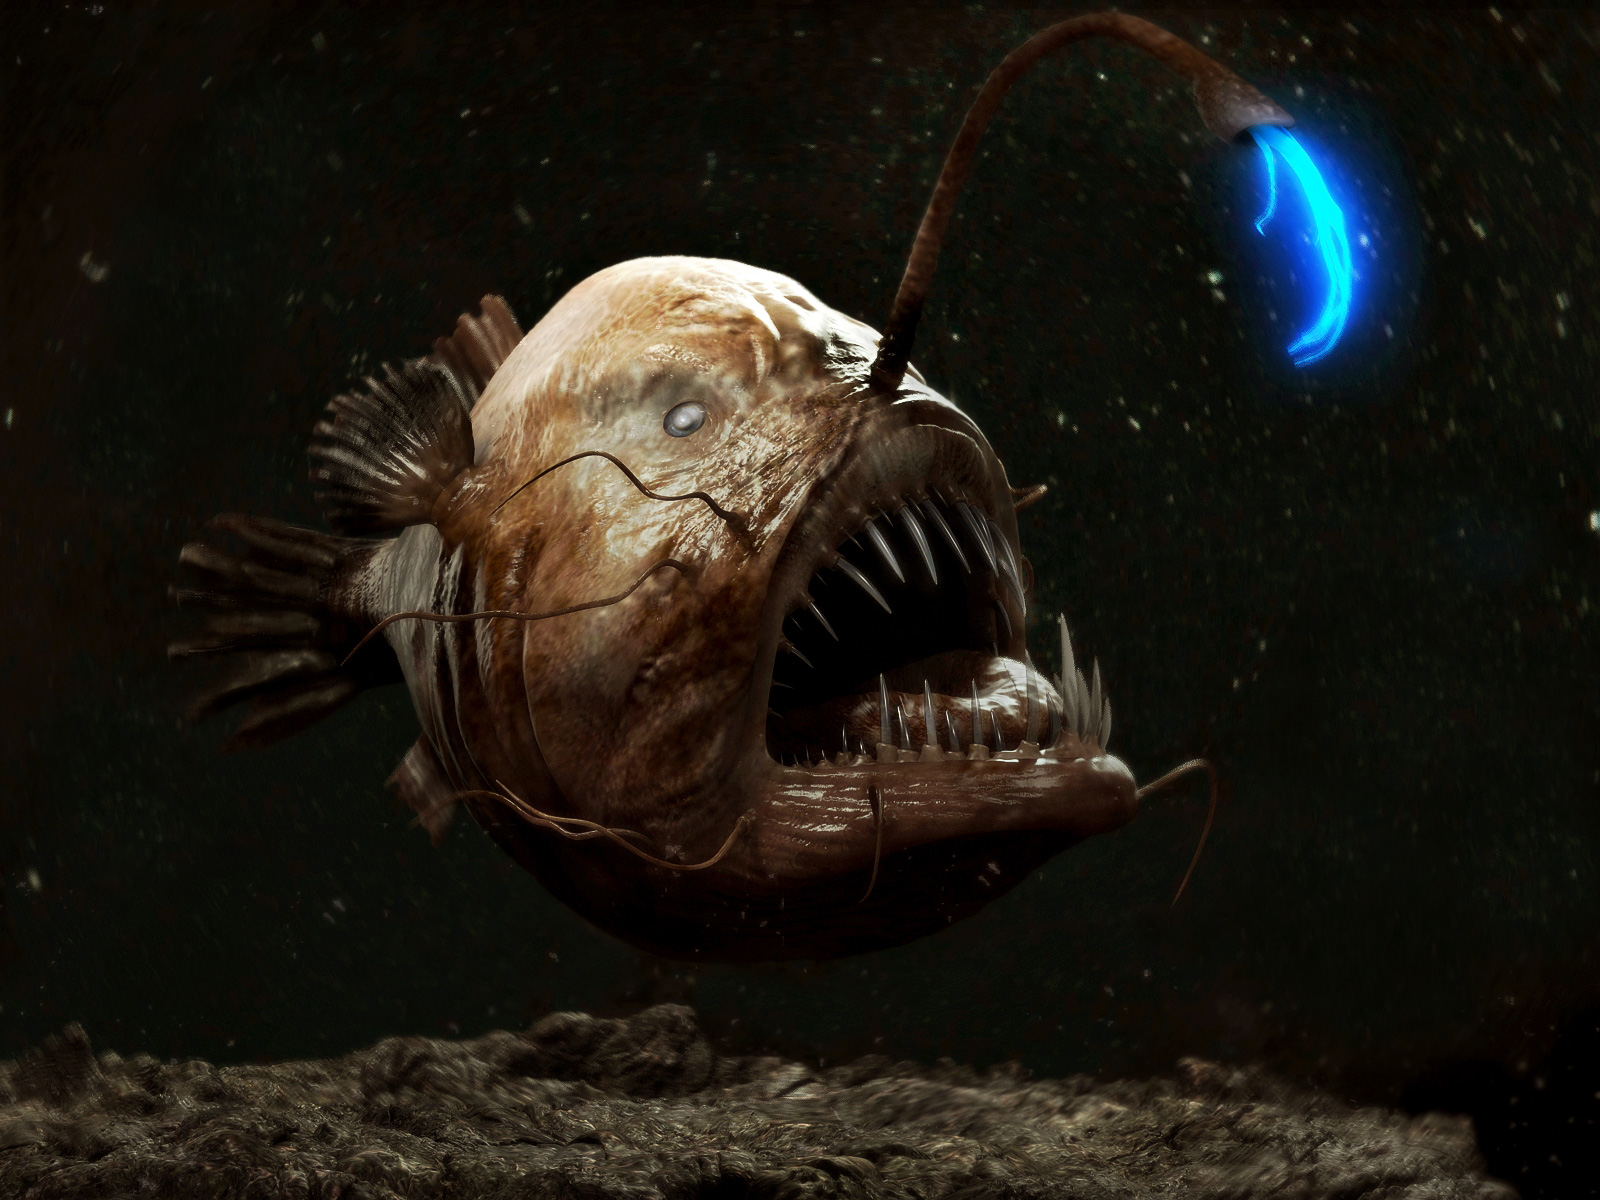 Angler fish by antonio peres and marcos amaro brazil for Where do angler fish live